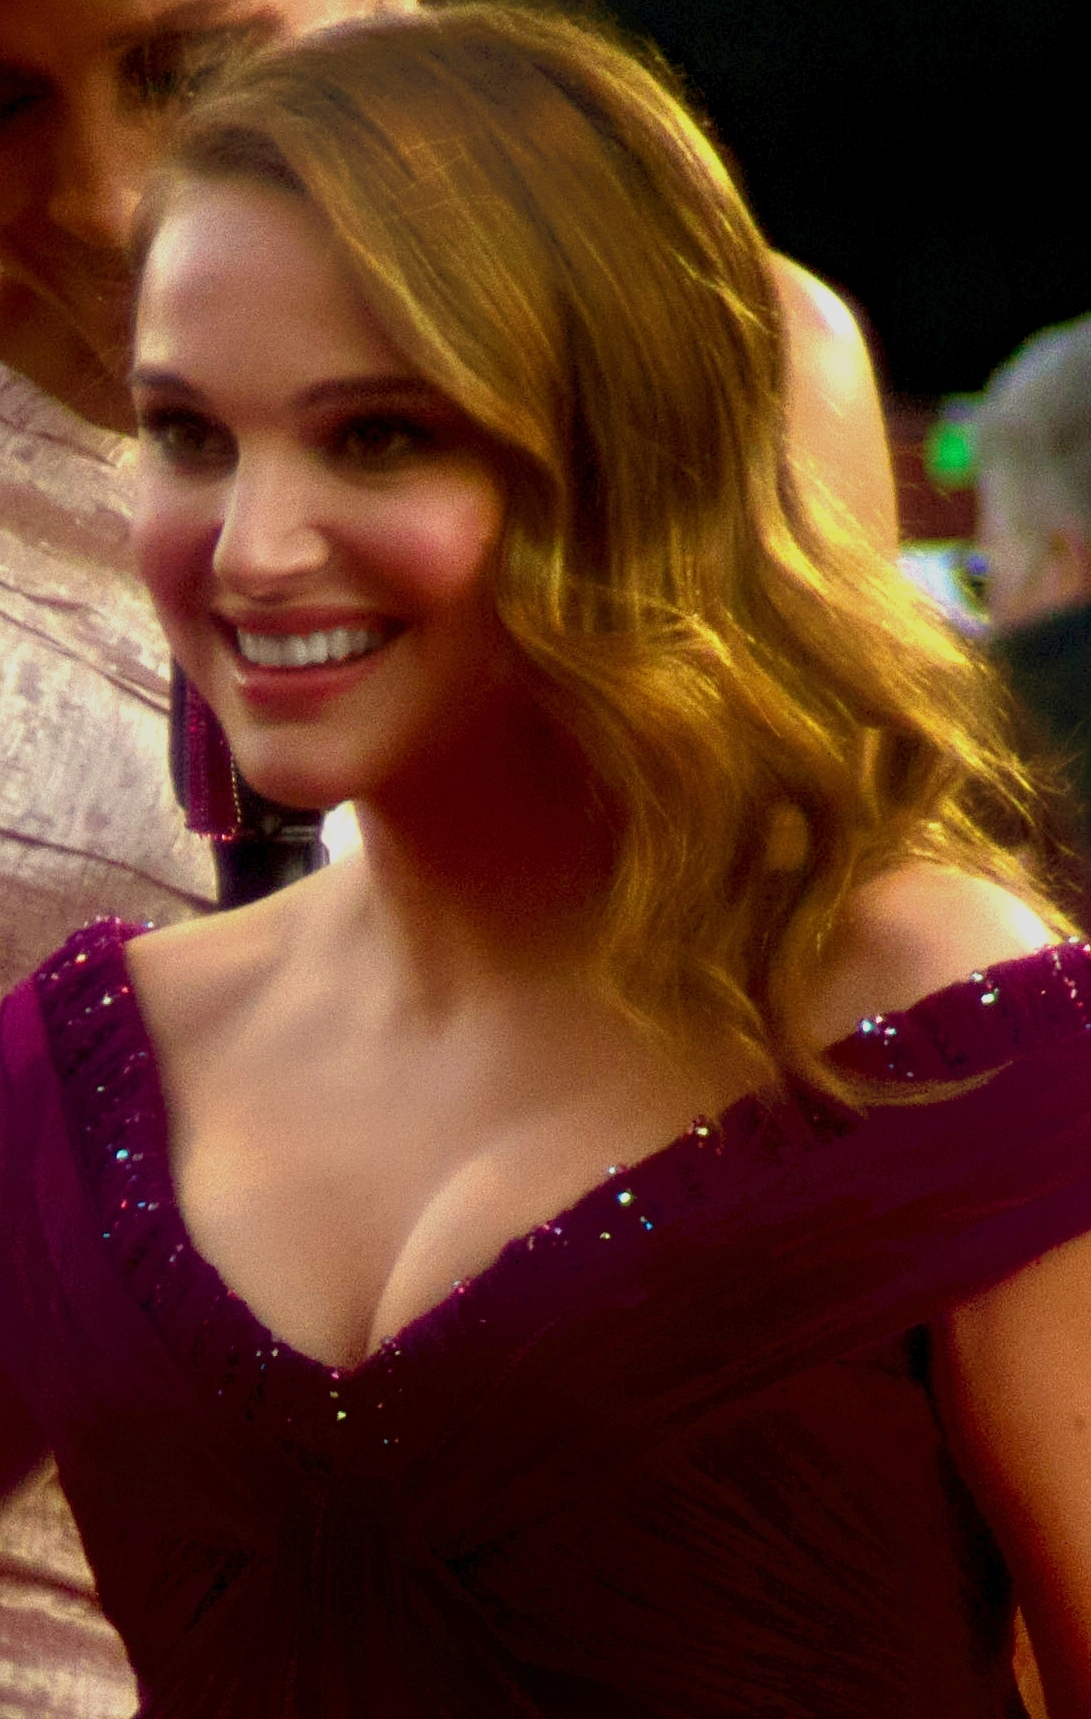 Description Natalie Portman 2011 AA2.jpg